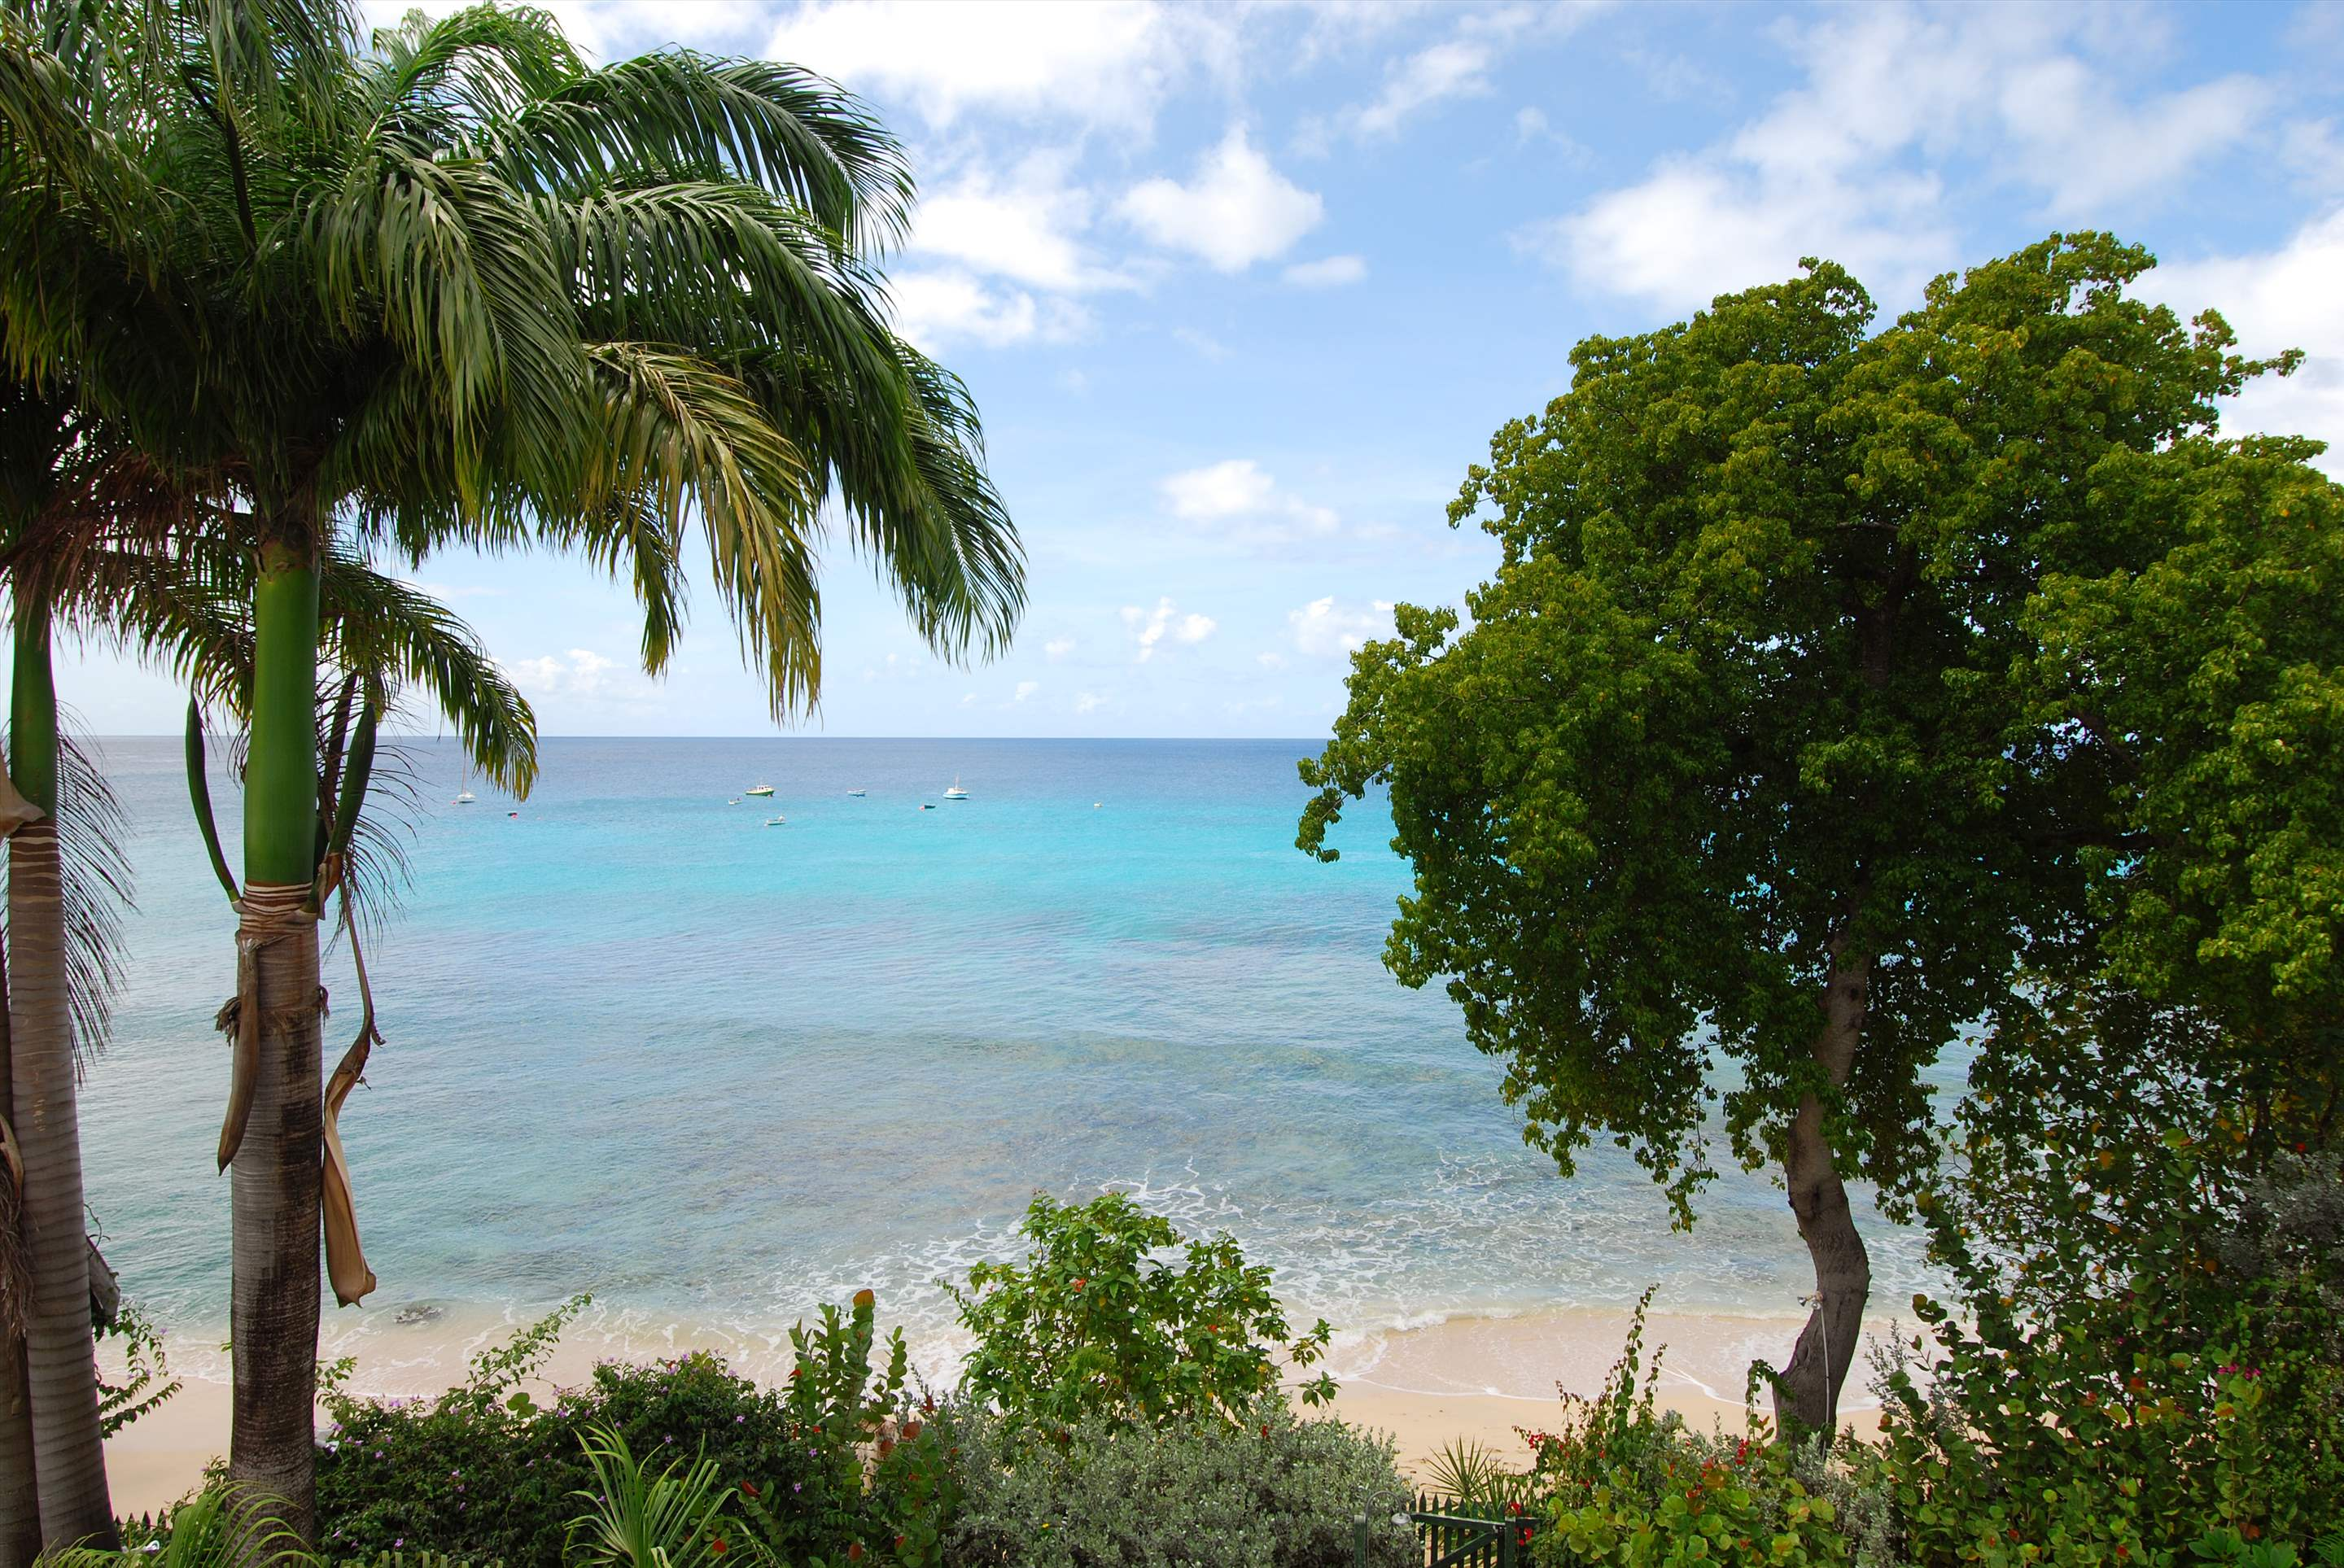 Fathom's End, 3 bedroom villa in St. James & West Coast, Barbados Photo #17